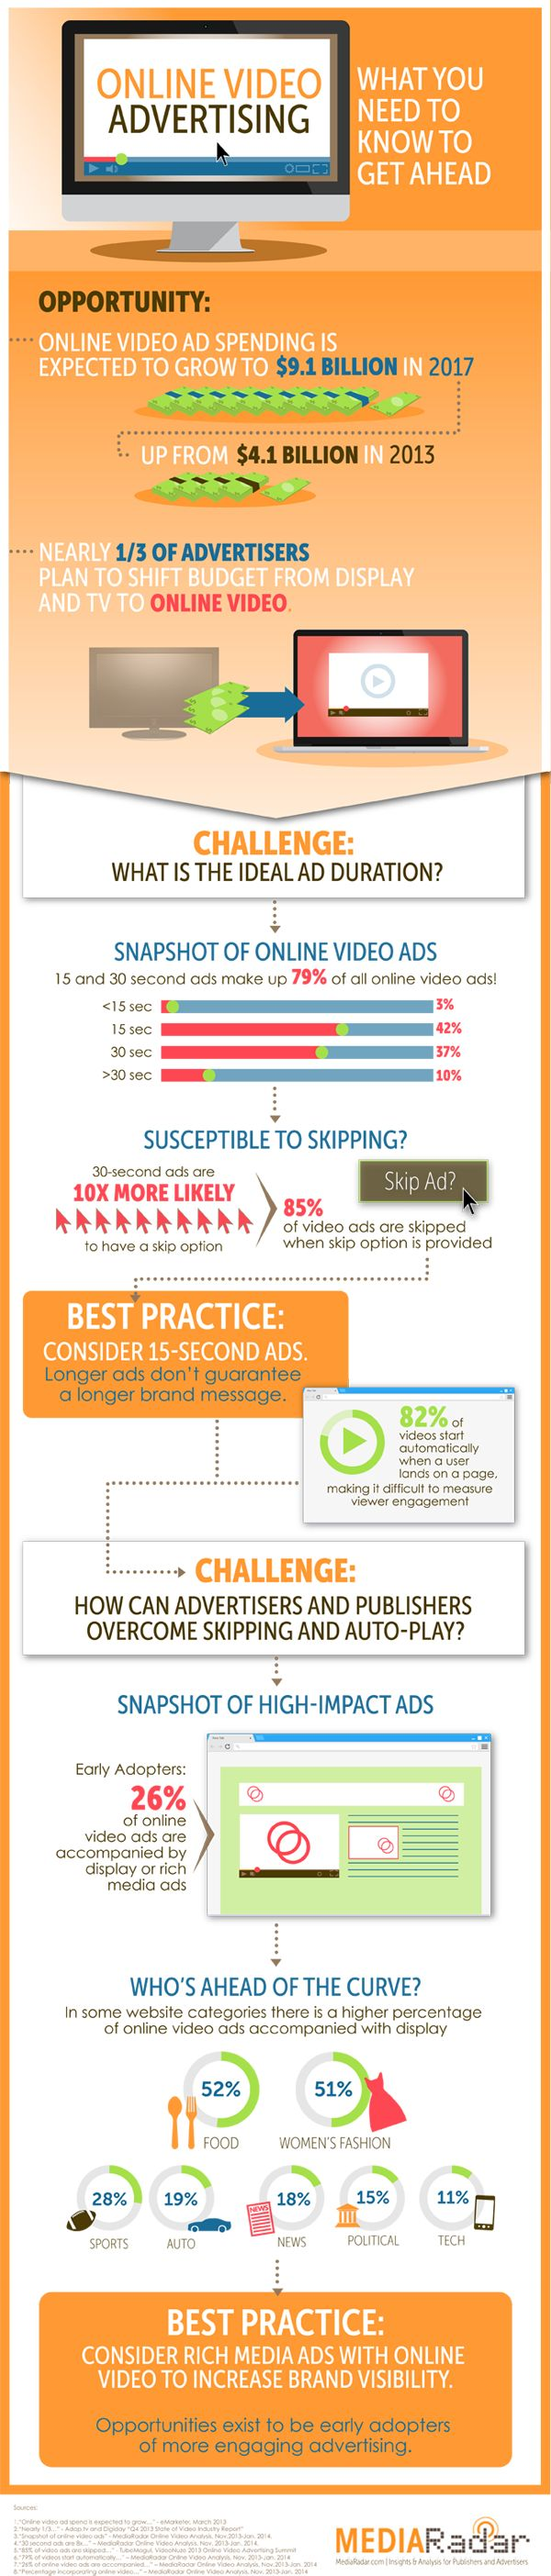 79% of all #OnlineVideo ads are 30 secs or less #VideoAd #Infographic